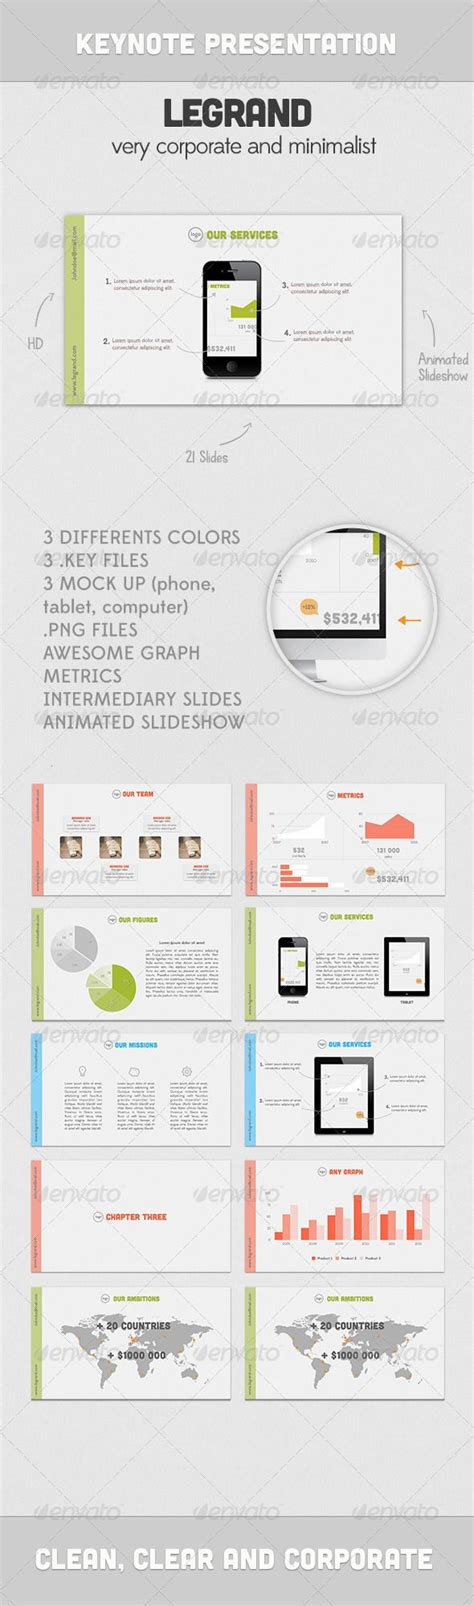 theme presentation keynote 124 best images about keynote themes templates on